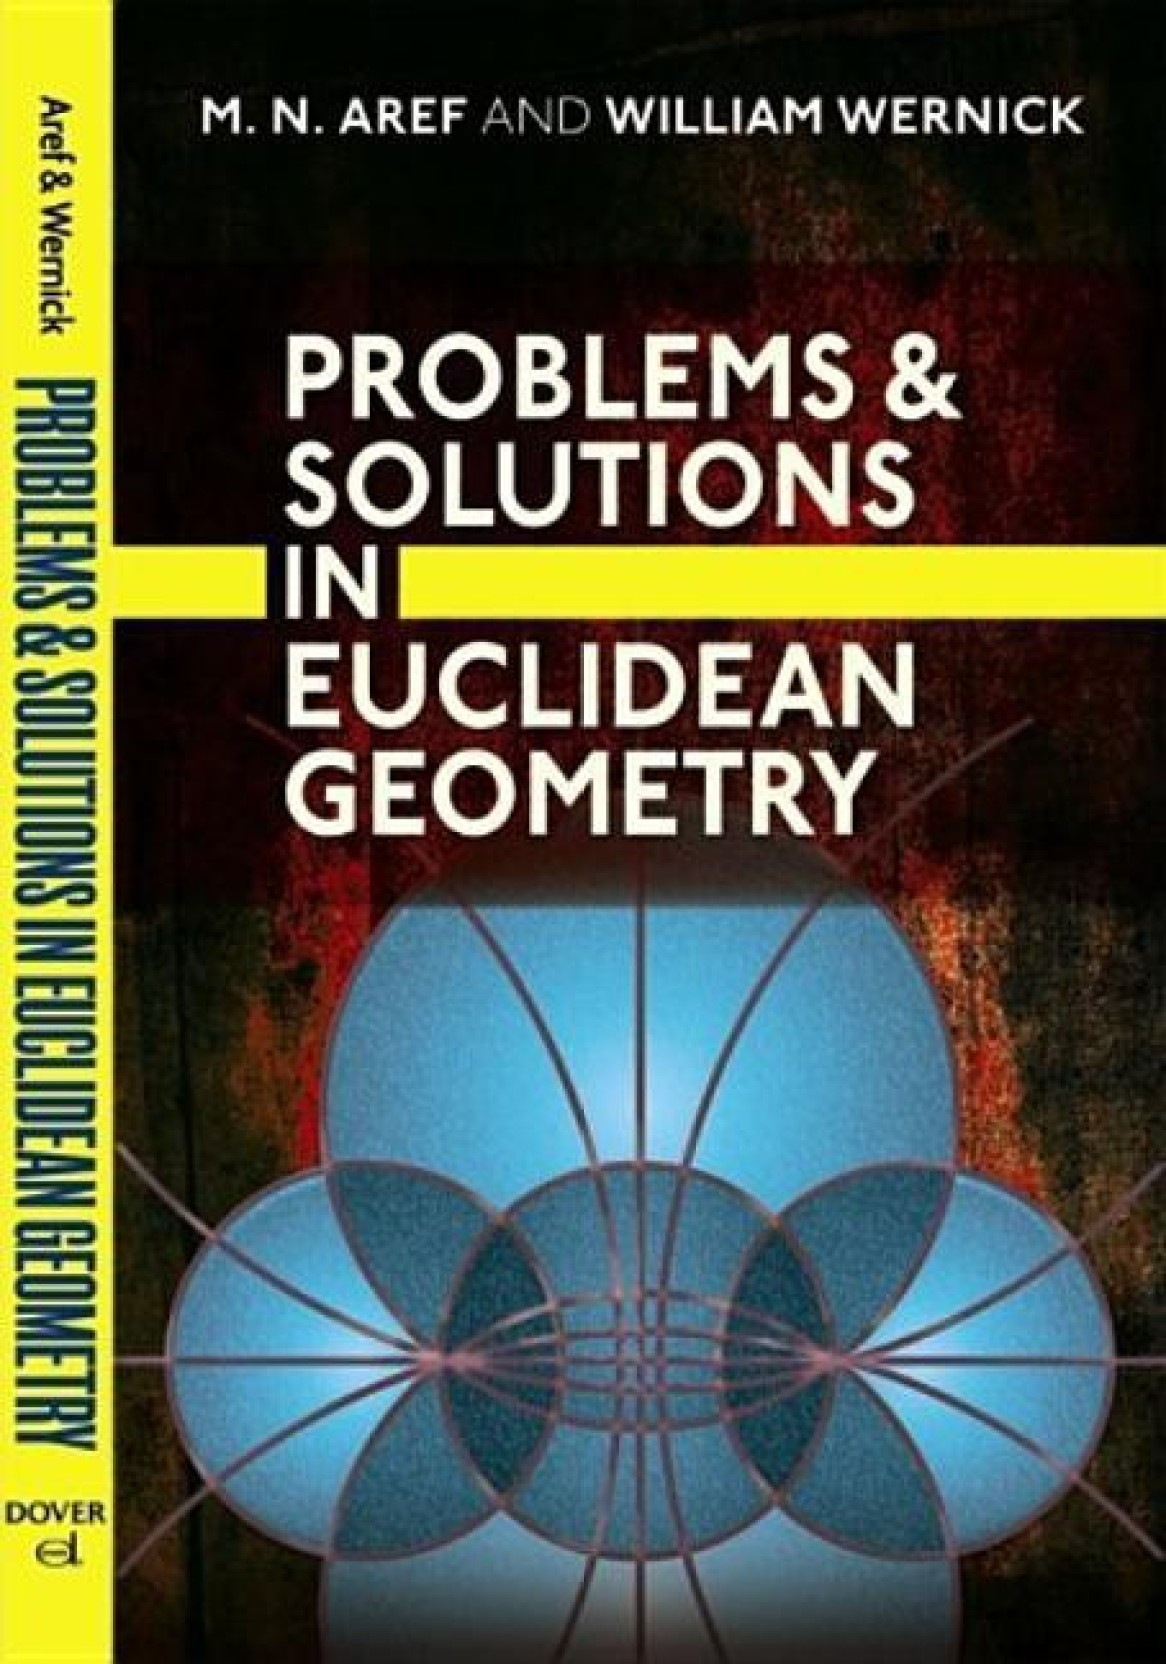 ... Euclidean Geometry (Dover Books on Mathematics). ADD TO CART